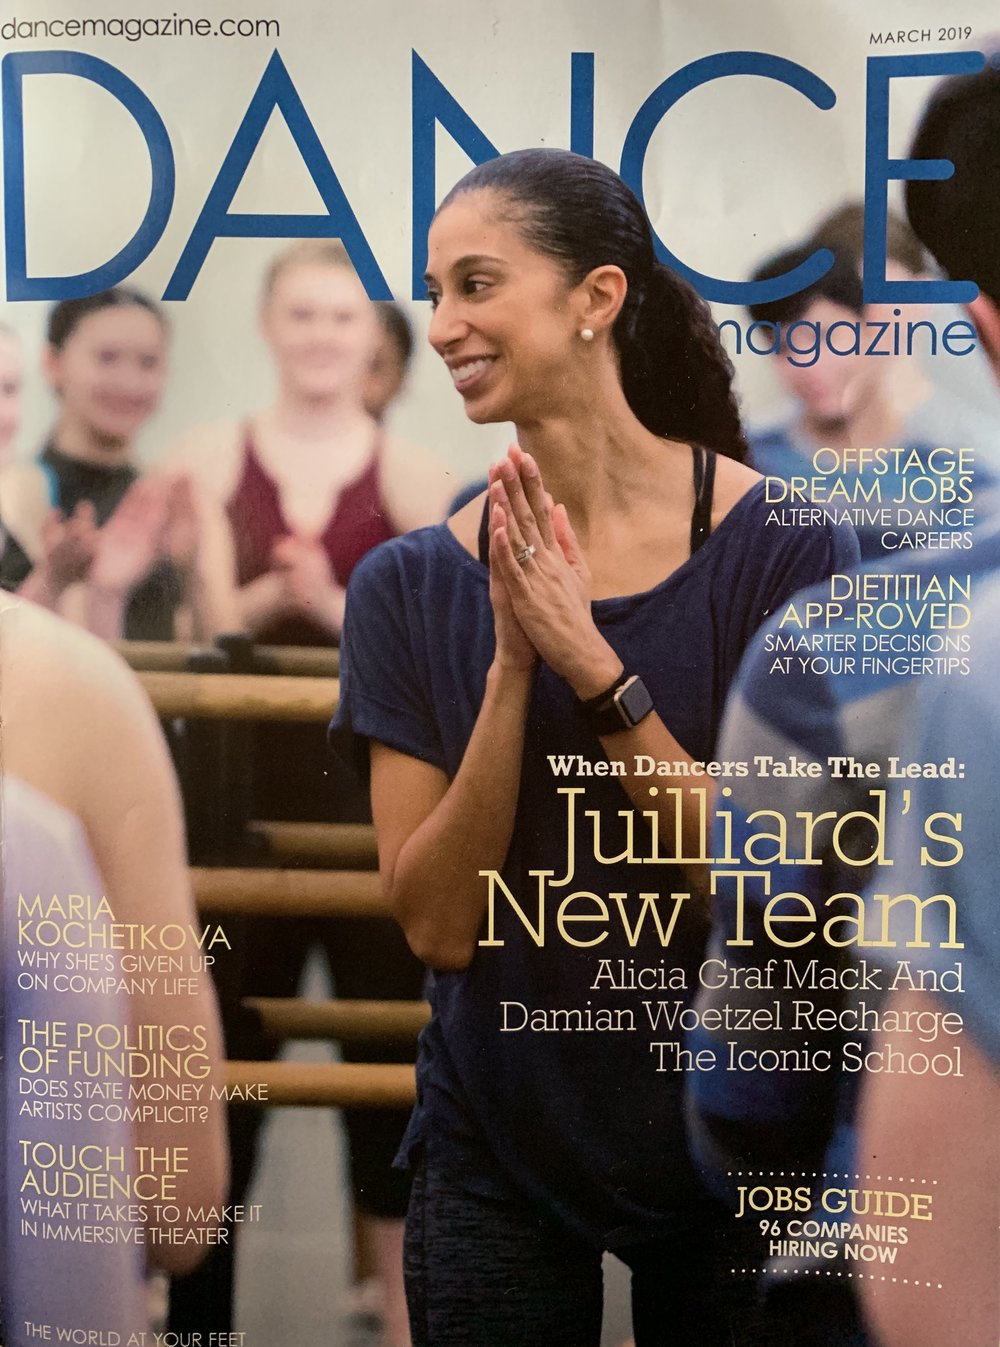 Dance Magazine! - So excited to be featured in Sylviane Gold's piece on the Abbott Award Commissions! Read the full article below or click here.